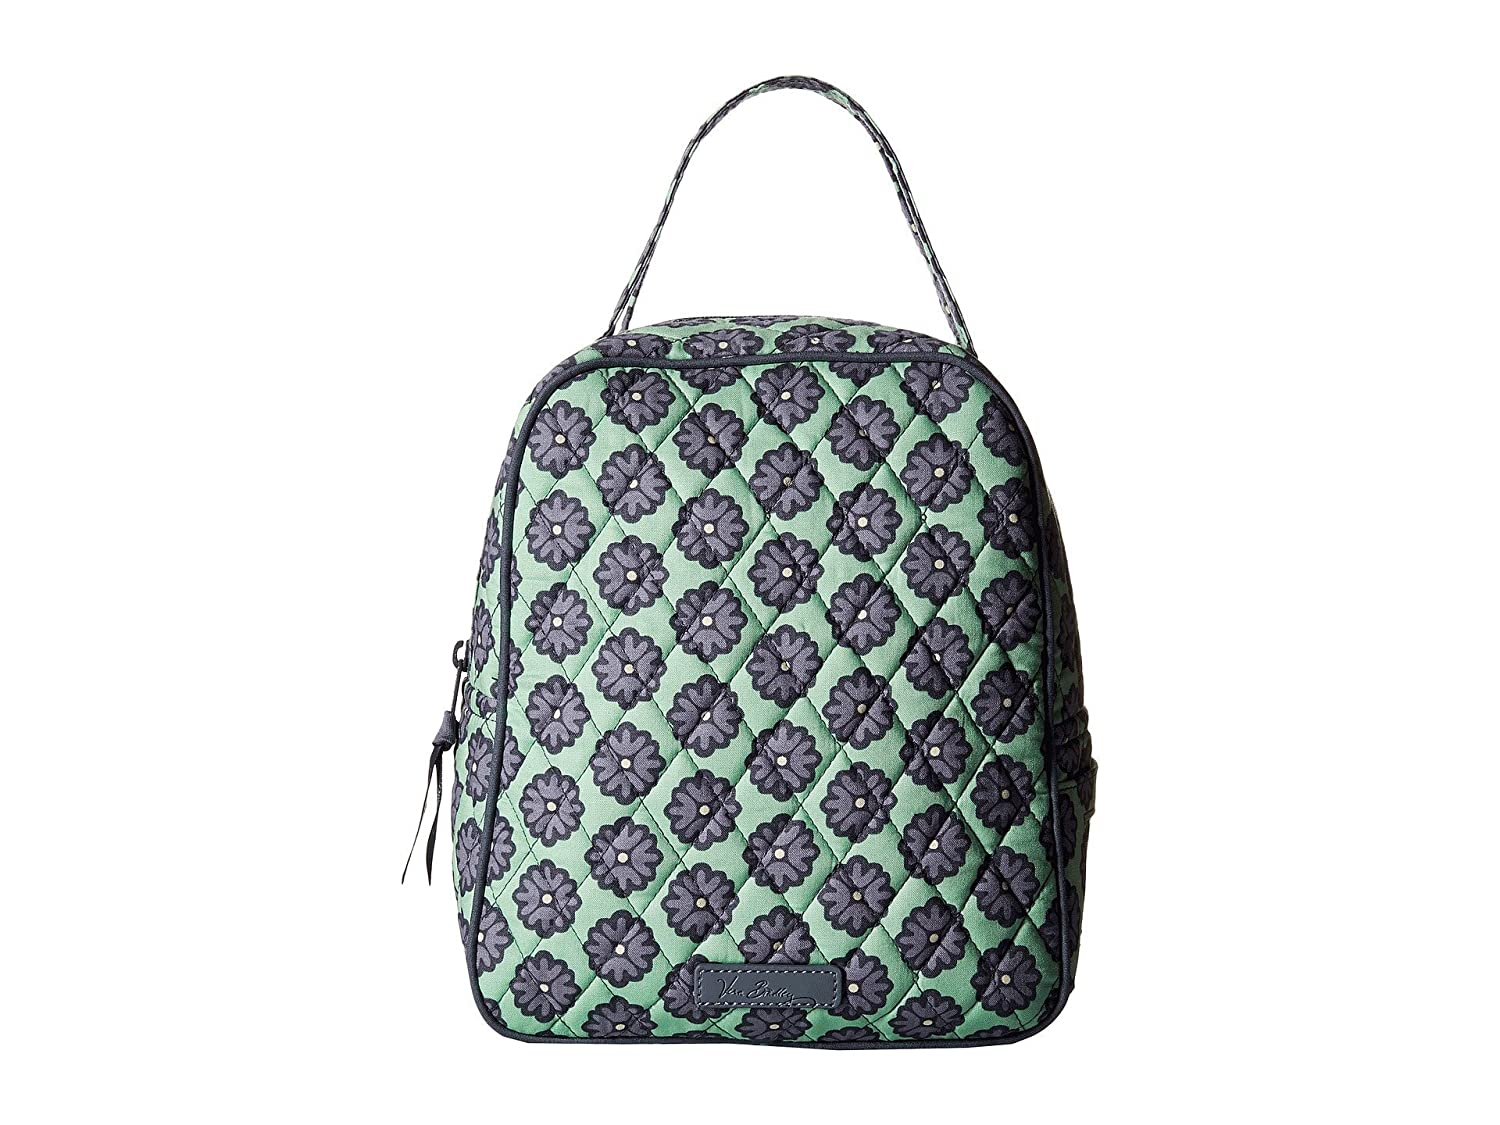 7e9e2b9088 Amazon.com  Vera Bradley Women s Lunch Bunch Nomadic Blossoms Lunch Bag   Shoes